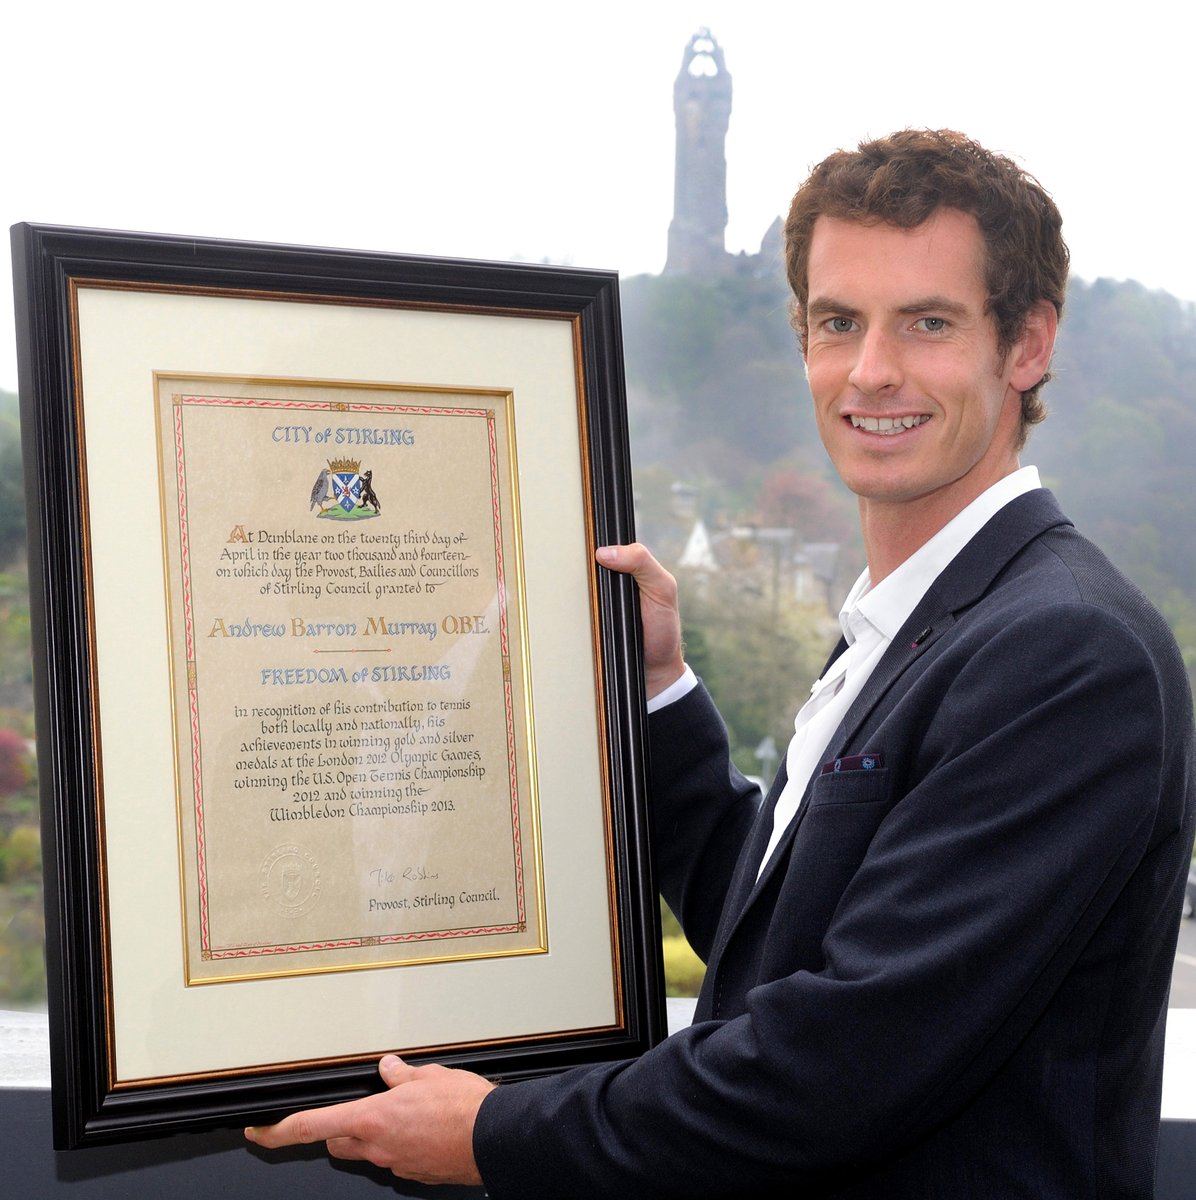 Andy Murray Receives Freedom of Stirling Award